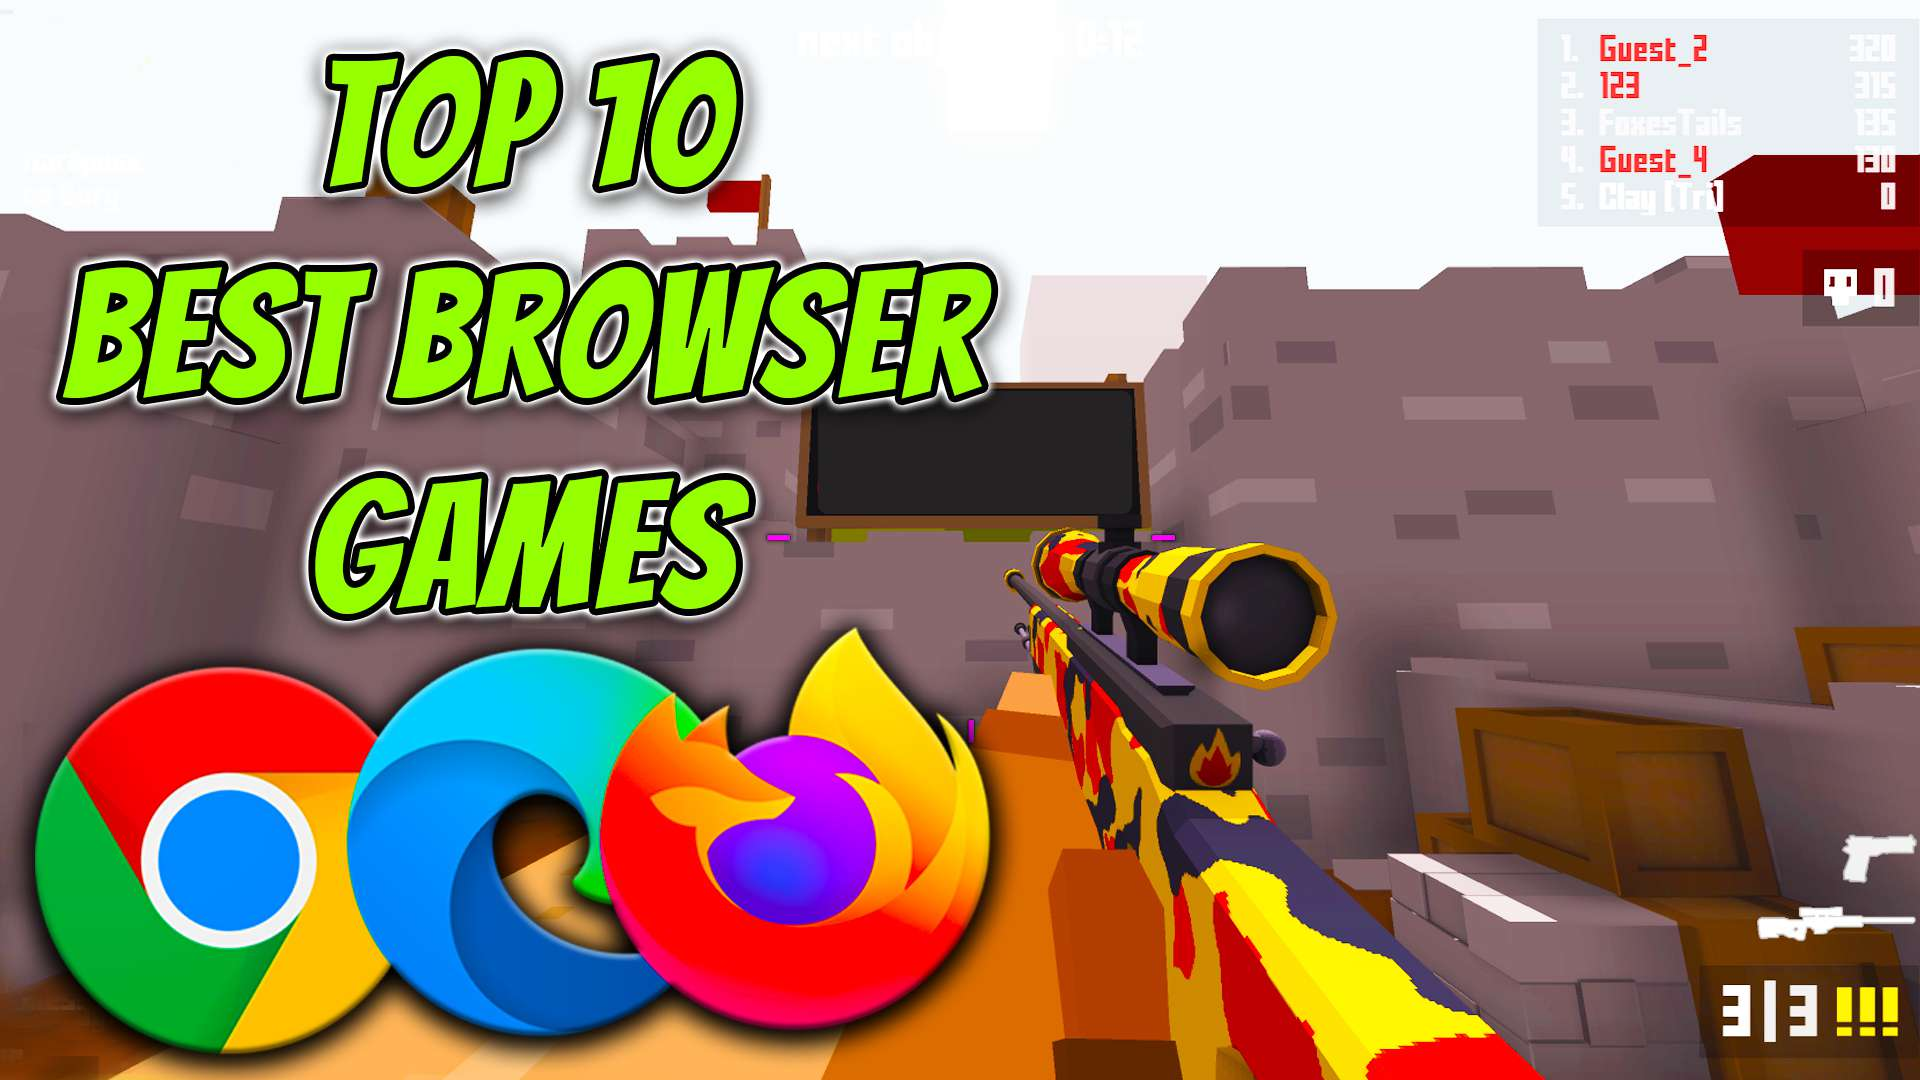 Top 10 Best Browser Games You Should Try!